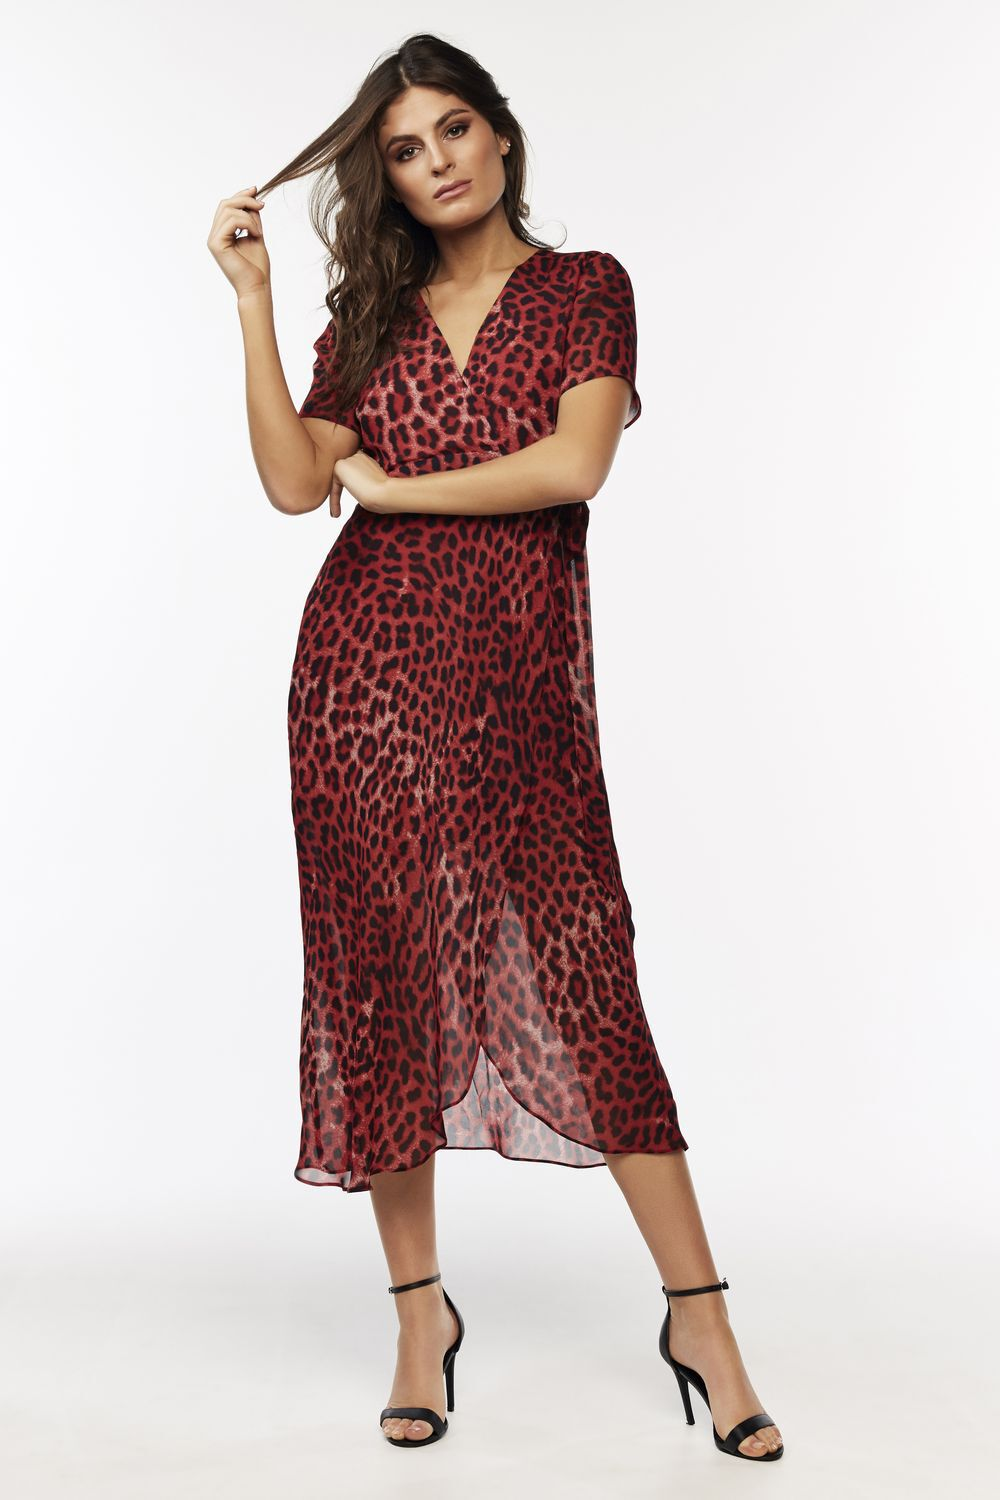 LEOPARD WRAP DRESS in colour CHILI PEPPER